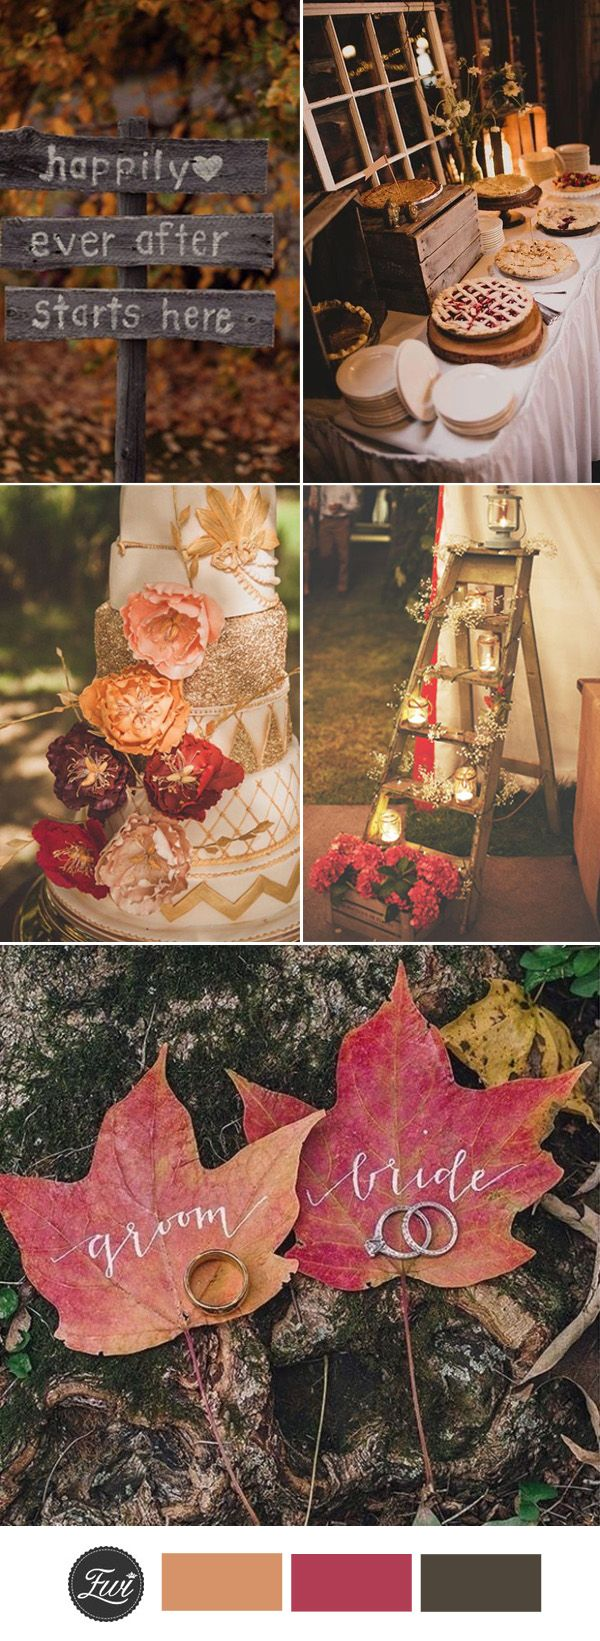 Wh what are good colors for bedrooms - Top 10 Fall Wedding Color Ideas For 2017 Trends